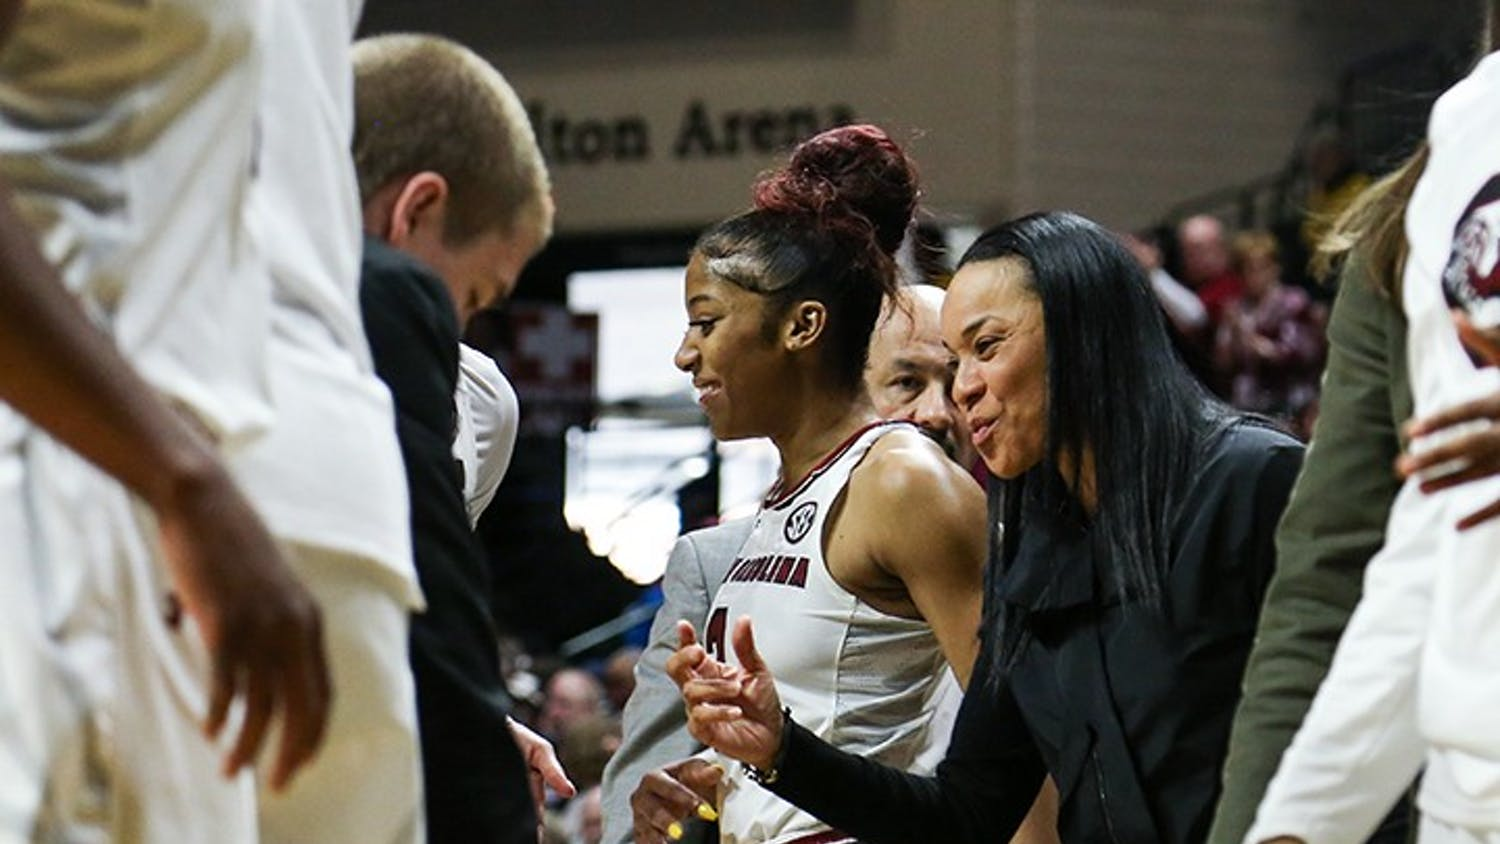 Head coach Dawn Staley talks to players during a timeout at the first round of the NCAA playoffs in the Halton Arena on Friday.